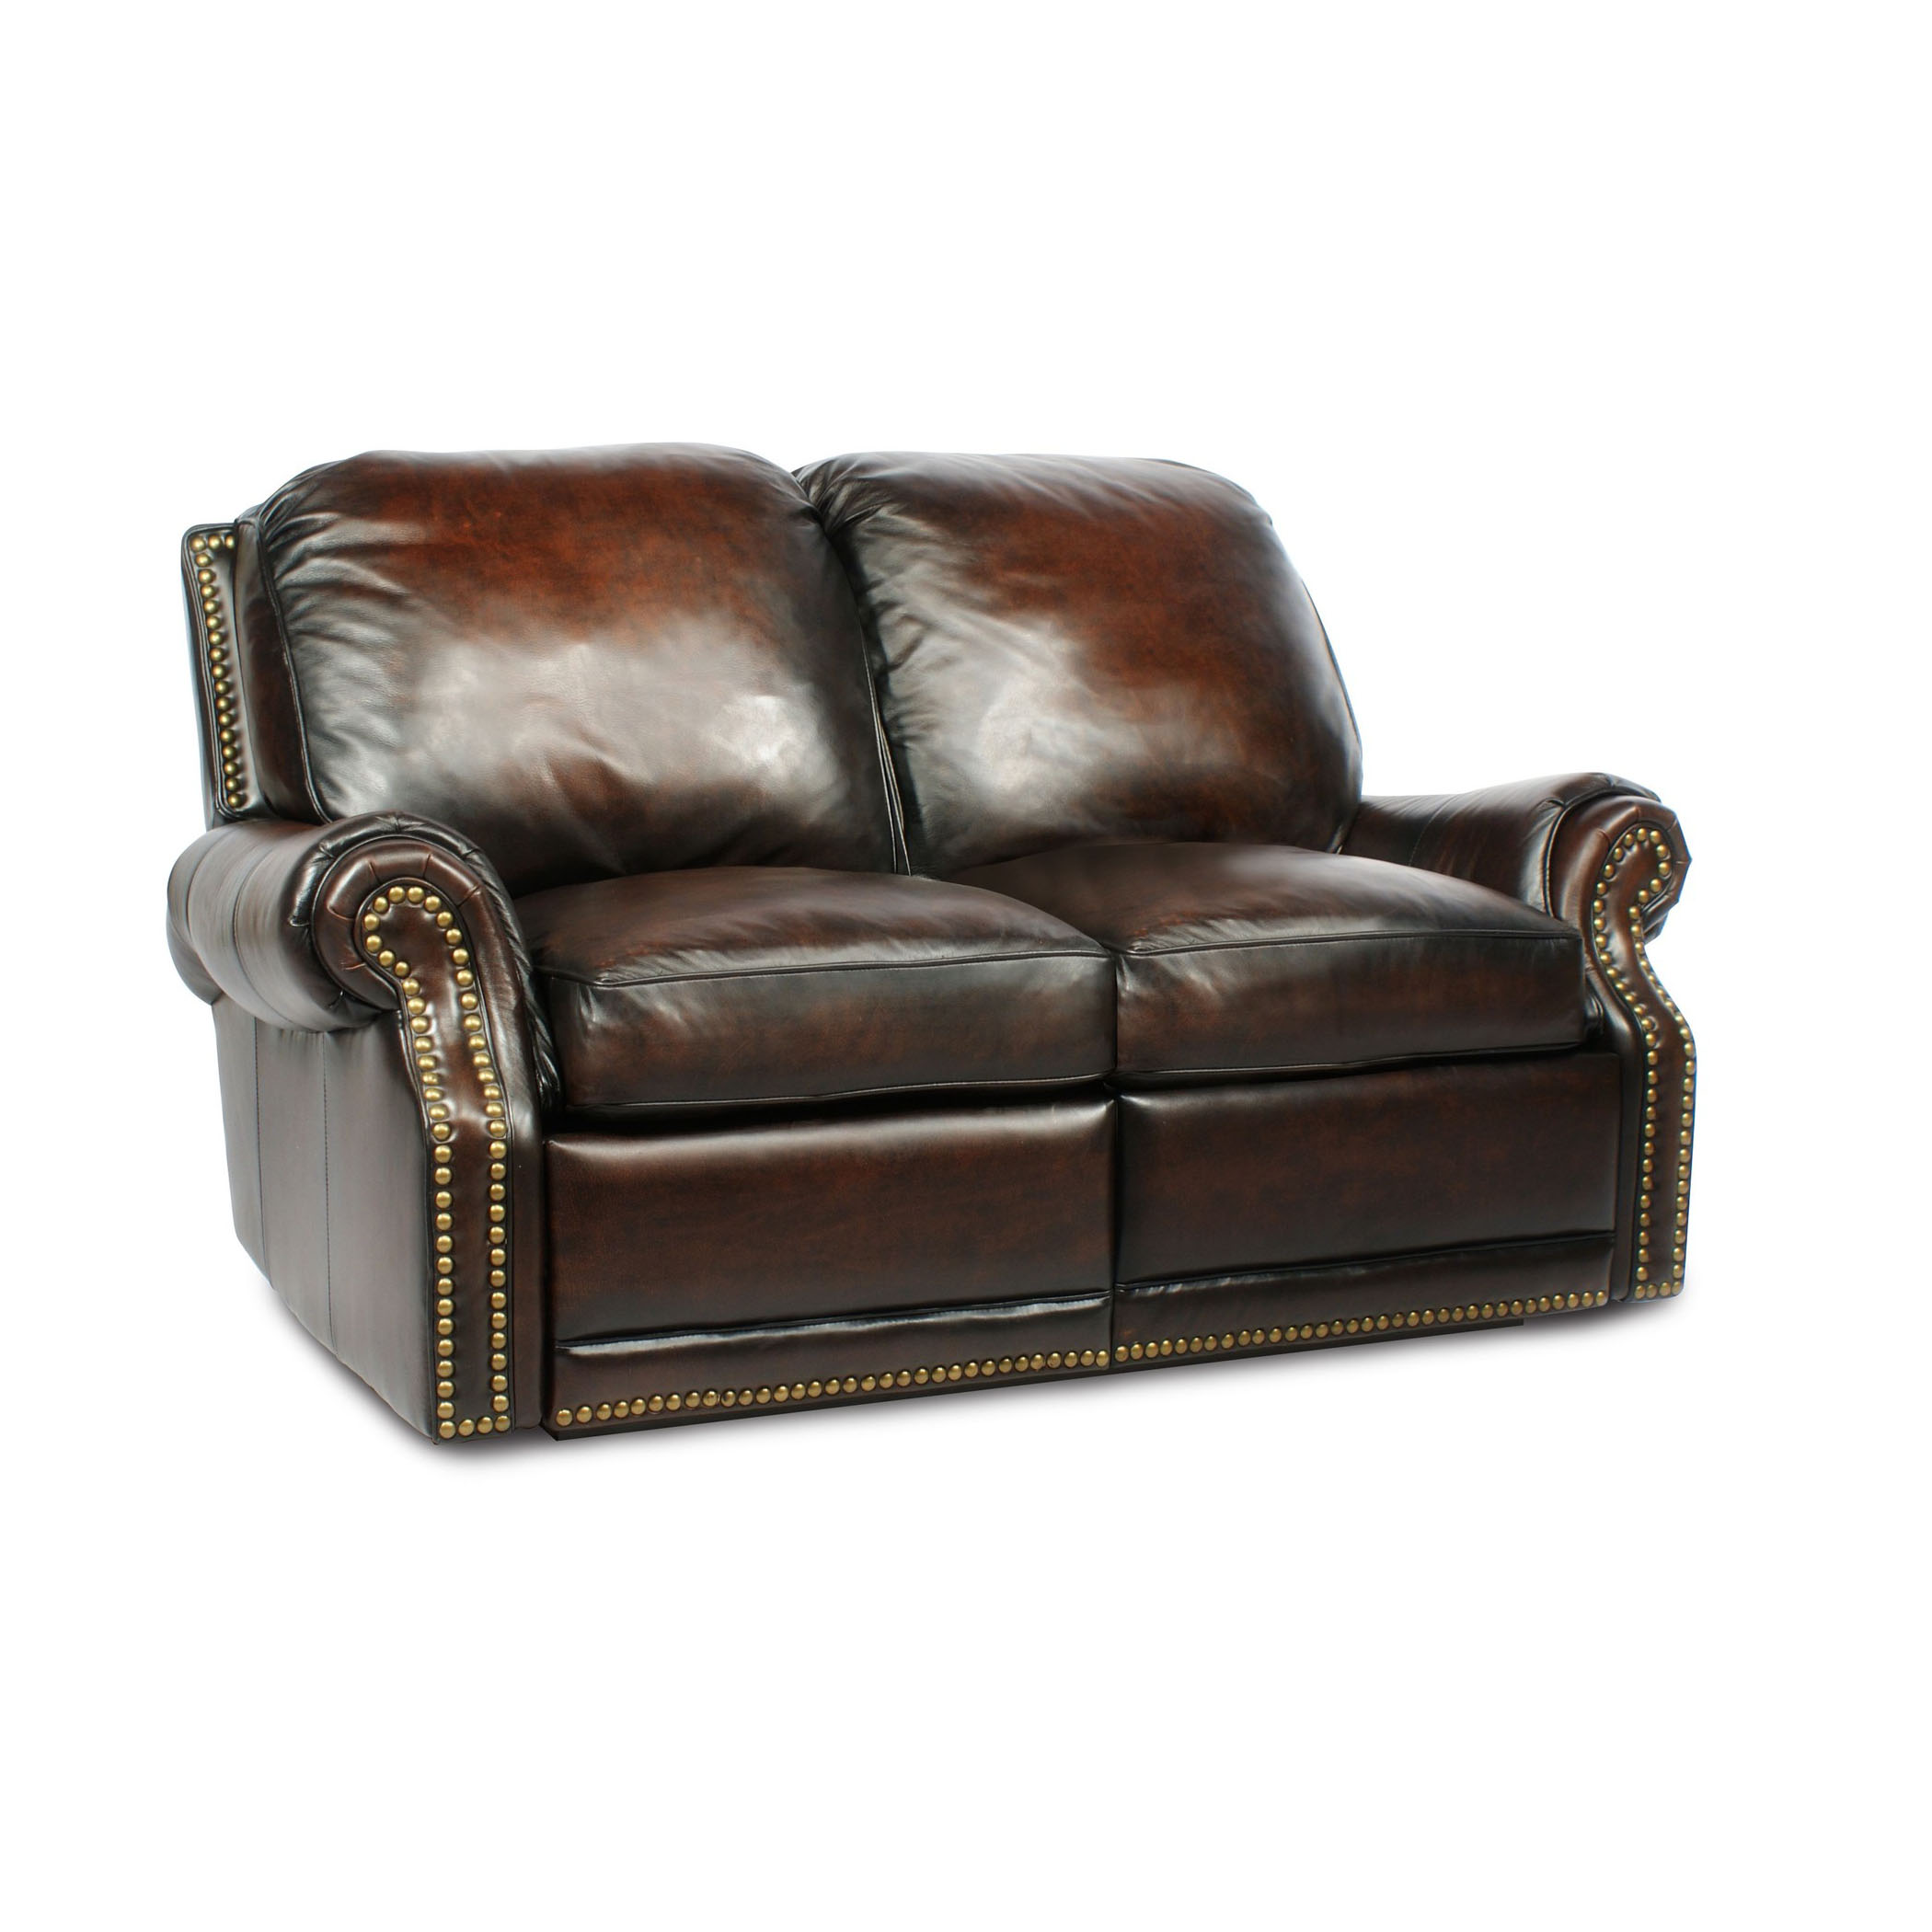 Lounge Couch Company Barcalounger Premier Ii Leather 2 Seat Loveseat Sofa